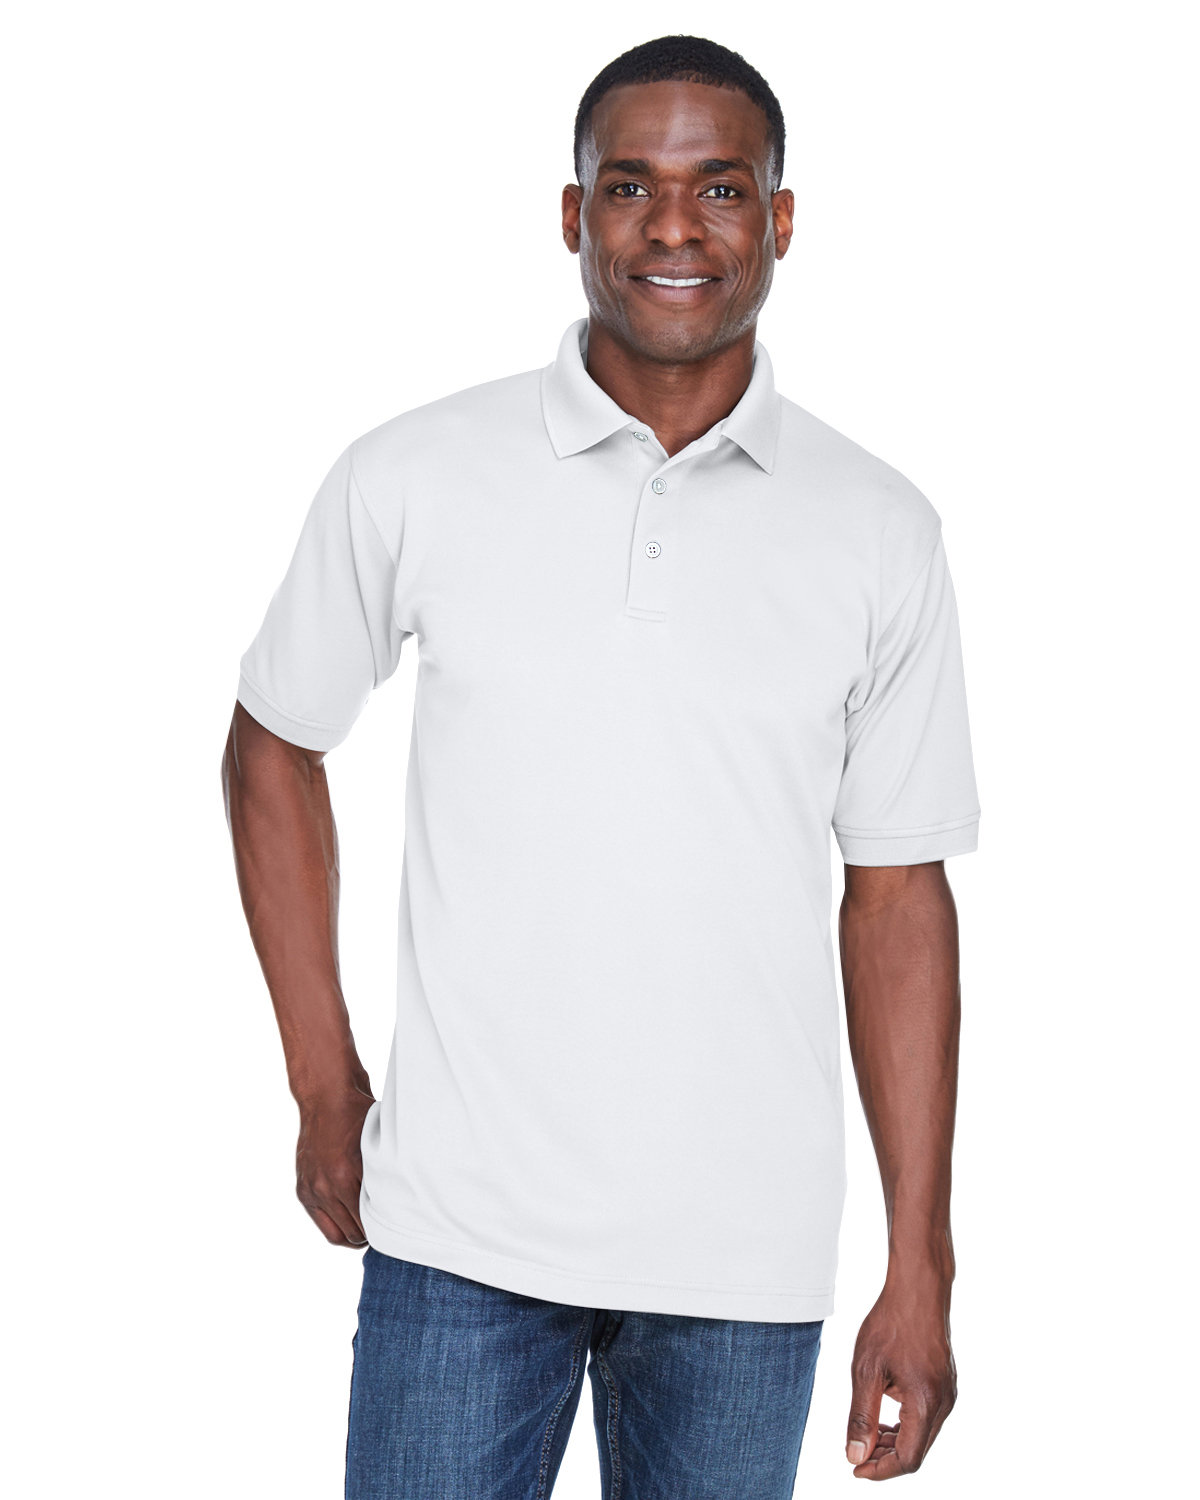 UltraClub Men's PlatinumPerformance Piqué Polo with TempControl Technology WHITE